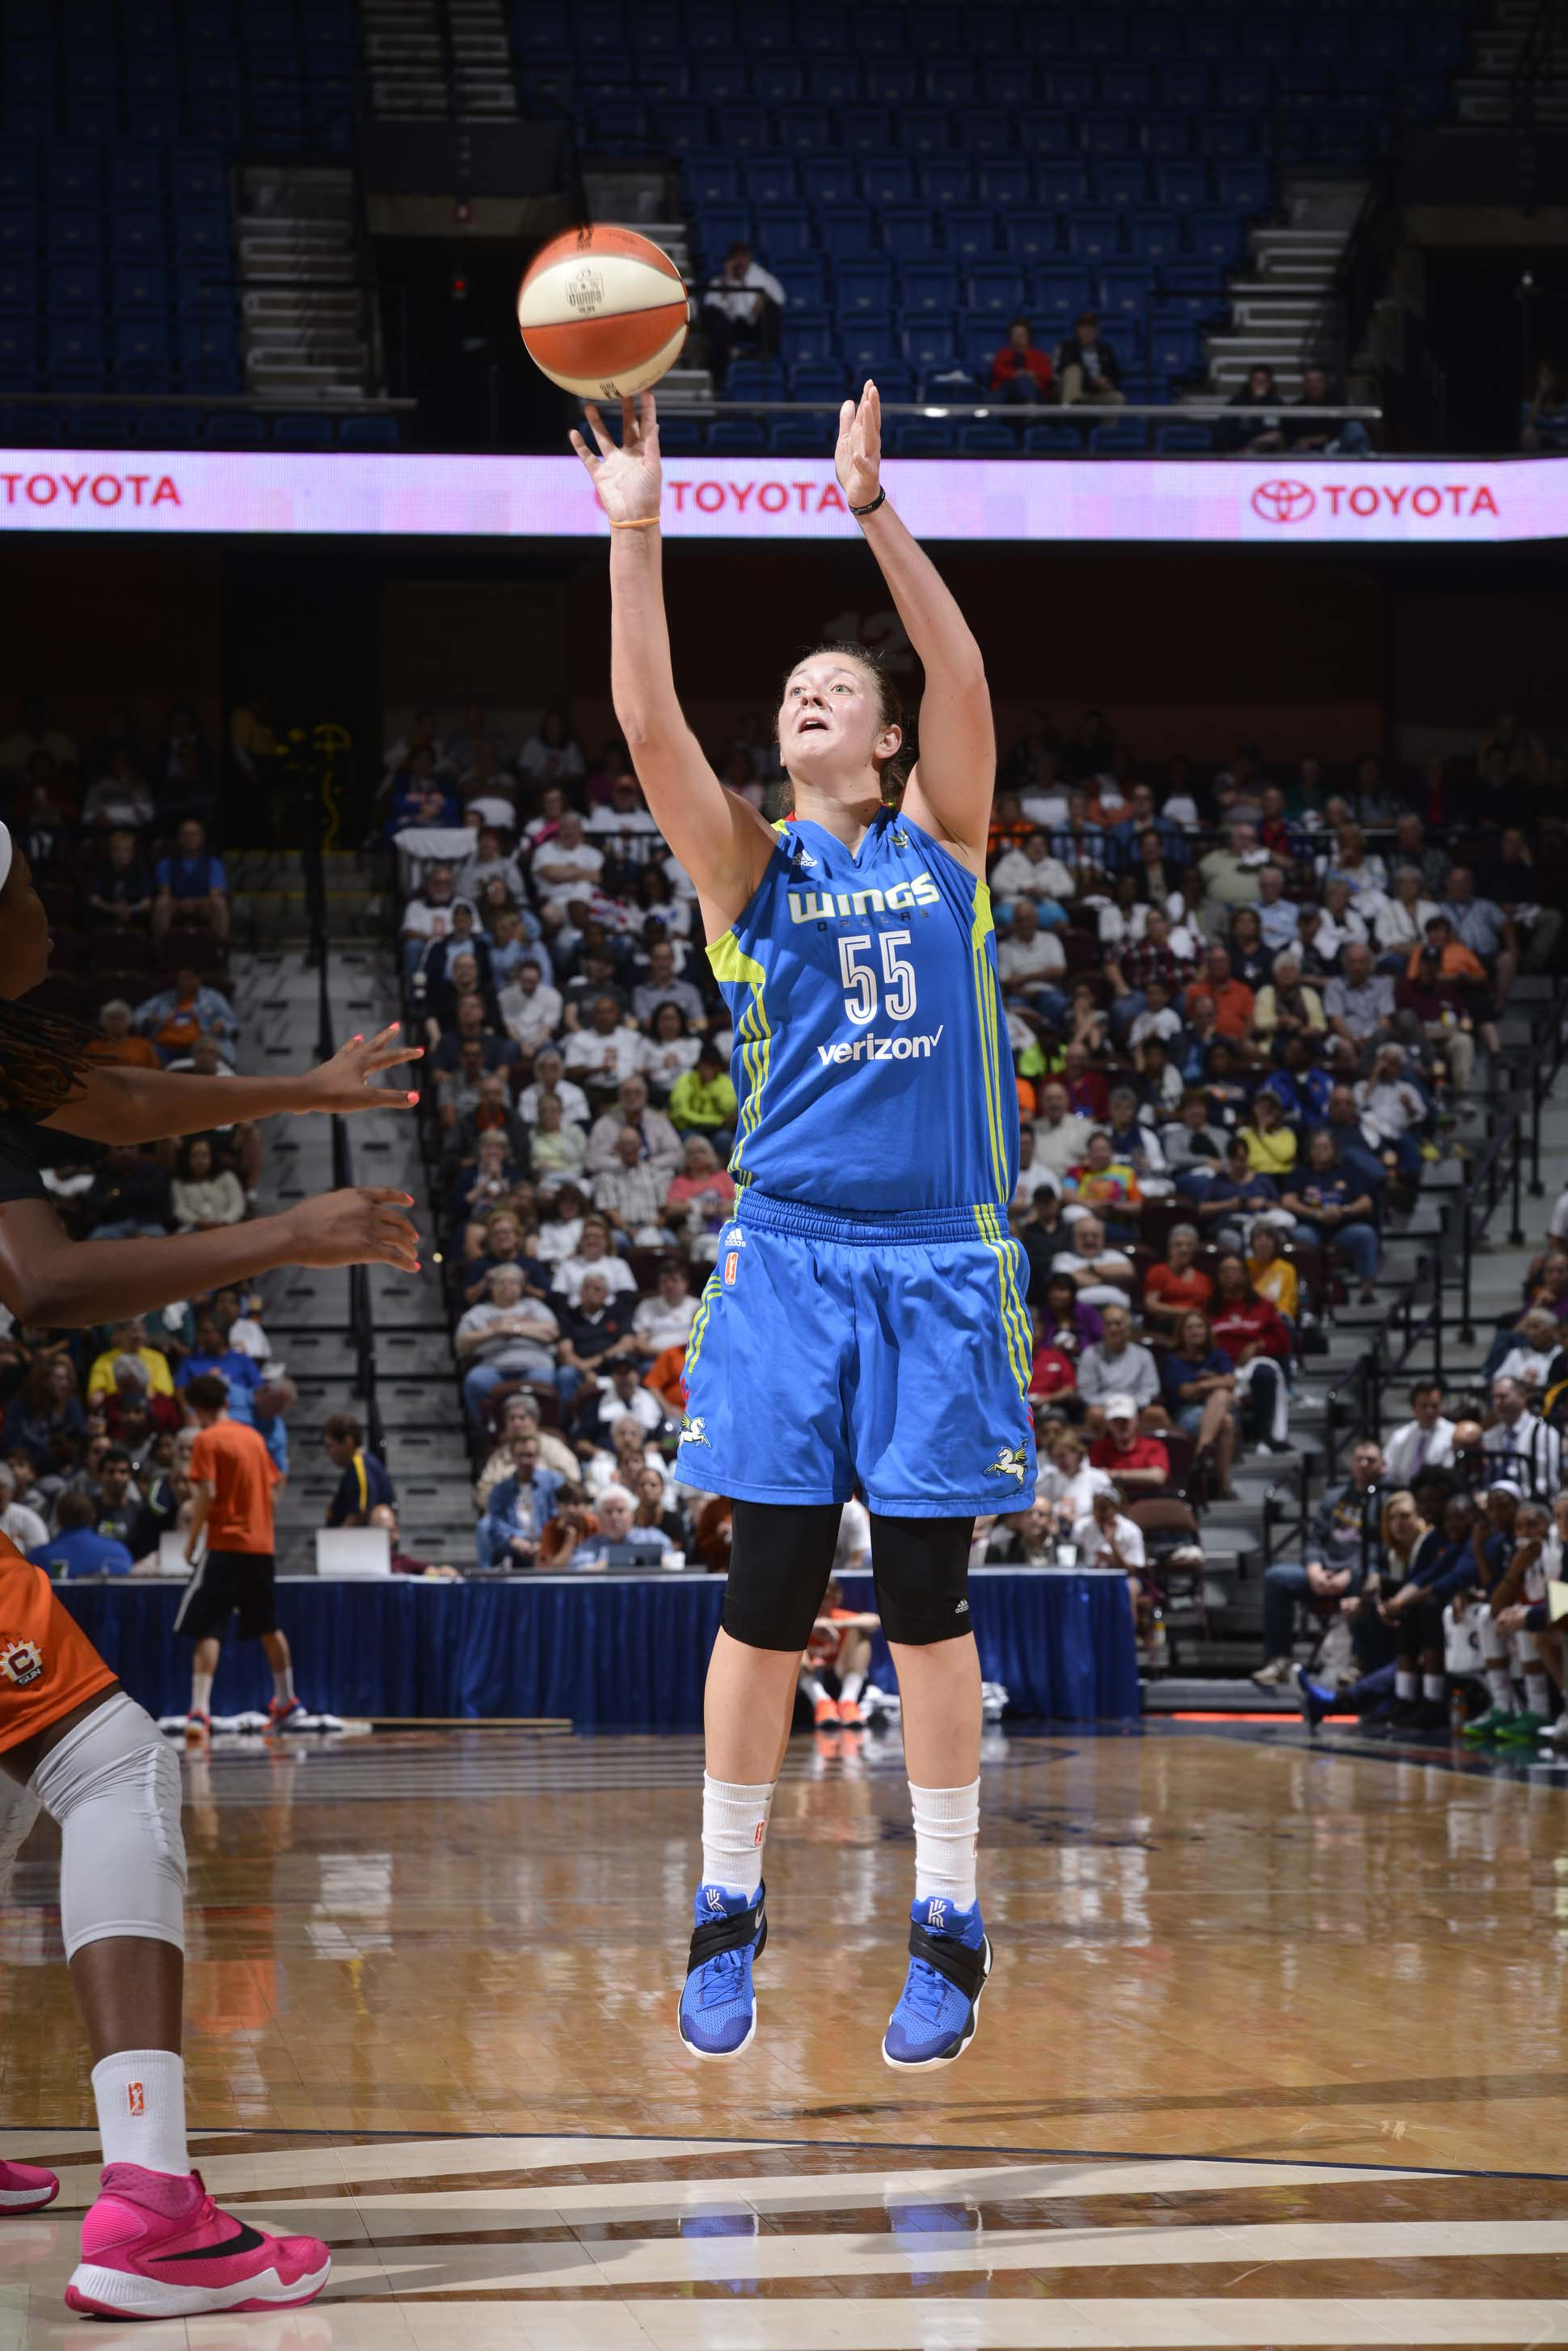 UNCASVILLE, CT - SEPTEMBER 16:  Theresa Plaisance #55 of the Dallas Wings shoots the ball against the Connecticut Sun on September 16, 2016 at the Mohegan Sun Arena in Uncasville, Connecticut. NOTE TO USER: User expressly acknowledges and agrees that, by downloading and/or using this Photograph, user is consenting to the terms and conditions of the Getty Images License Agreement. Mandatory Copyright Notice: Copyright 2016 NBAE (Photo by David Dow/NBAE via Getty Images)